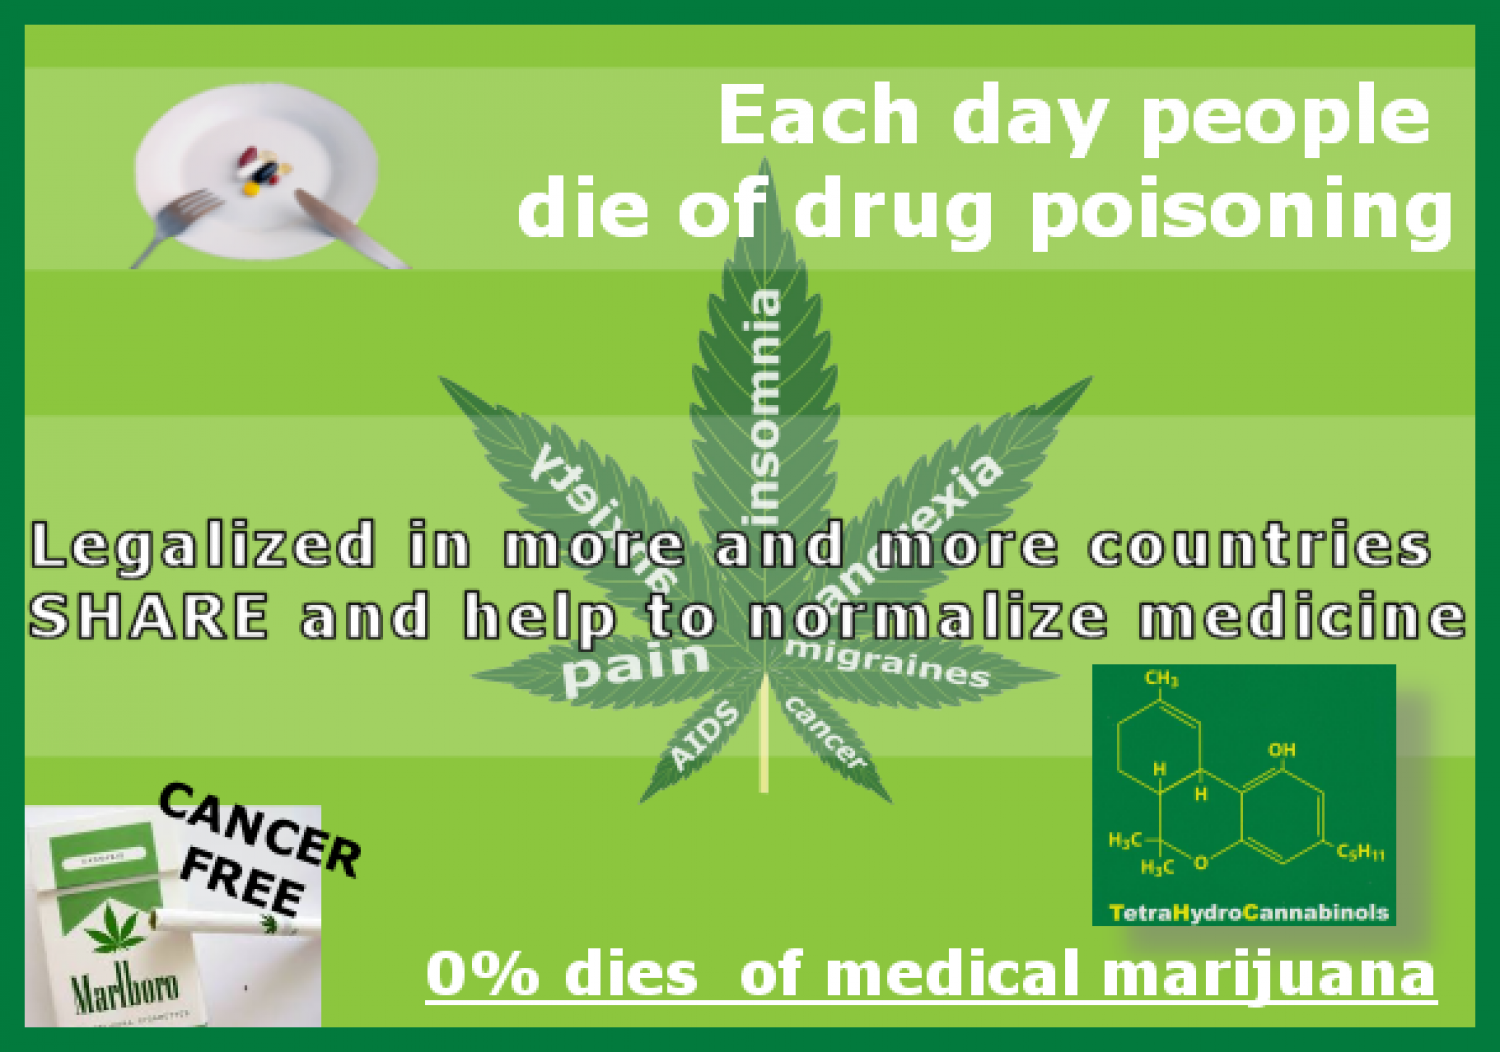 Each Day People Die Of Drug Poisoning Infographic